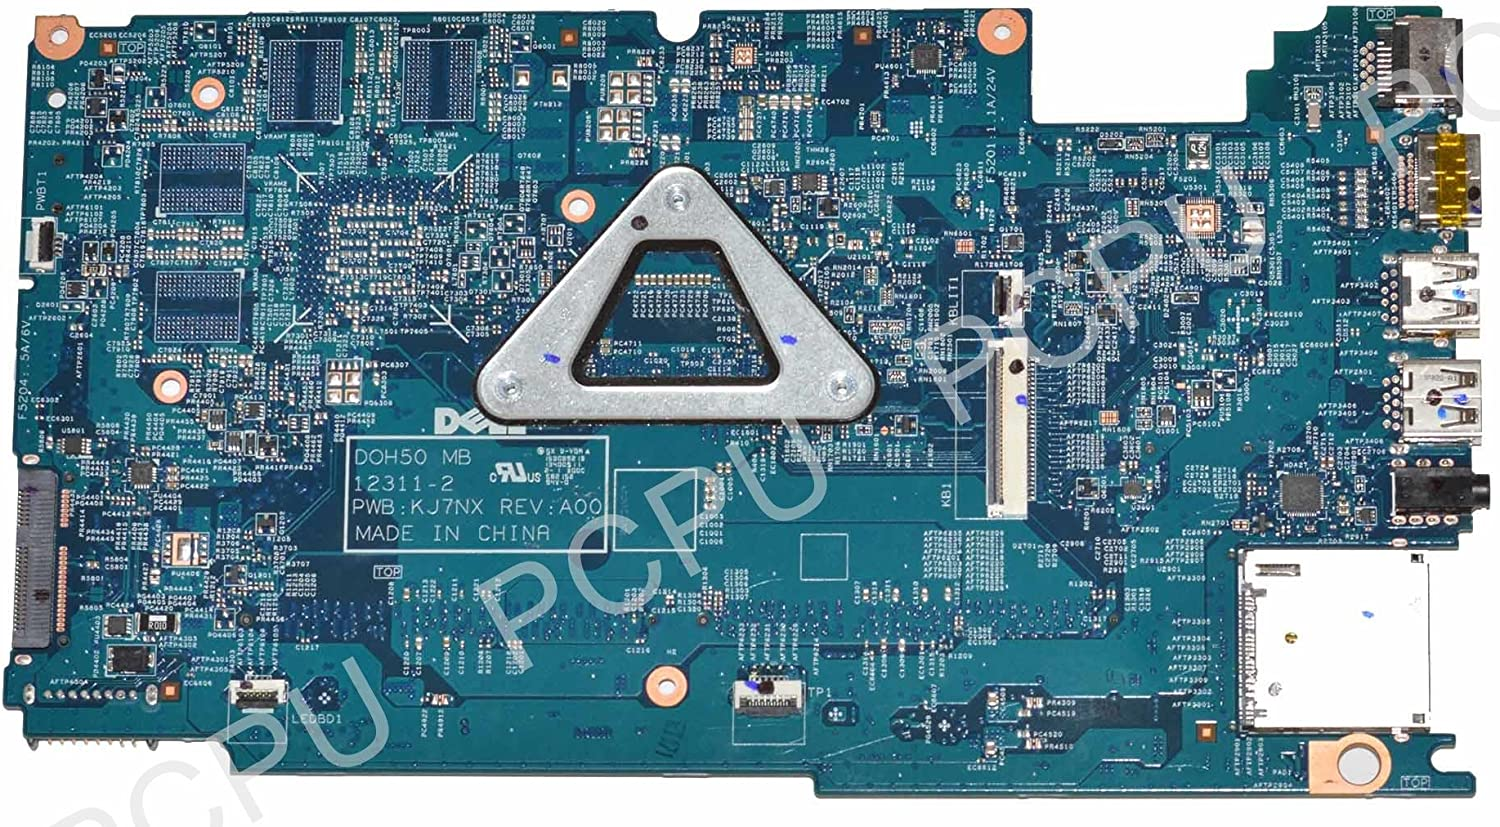 43KWC Dell Inspiron 15 7537 Laptop Motherboard w// i7-4500U 1.8GHz CPU